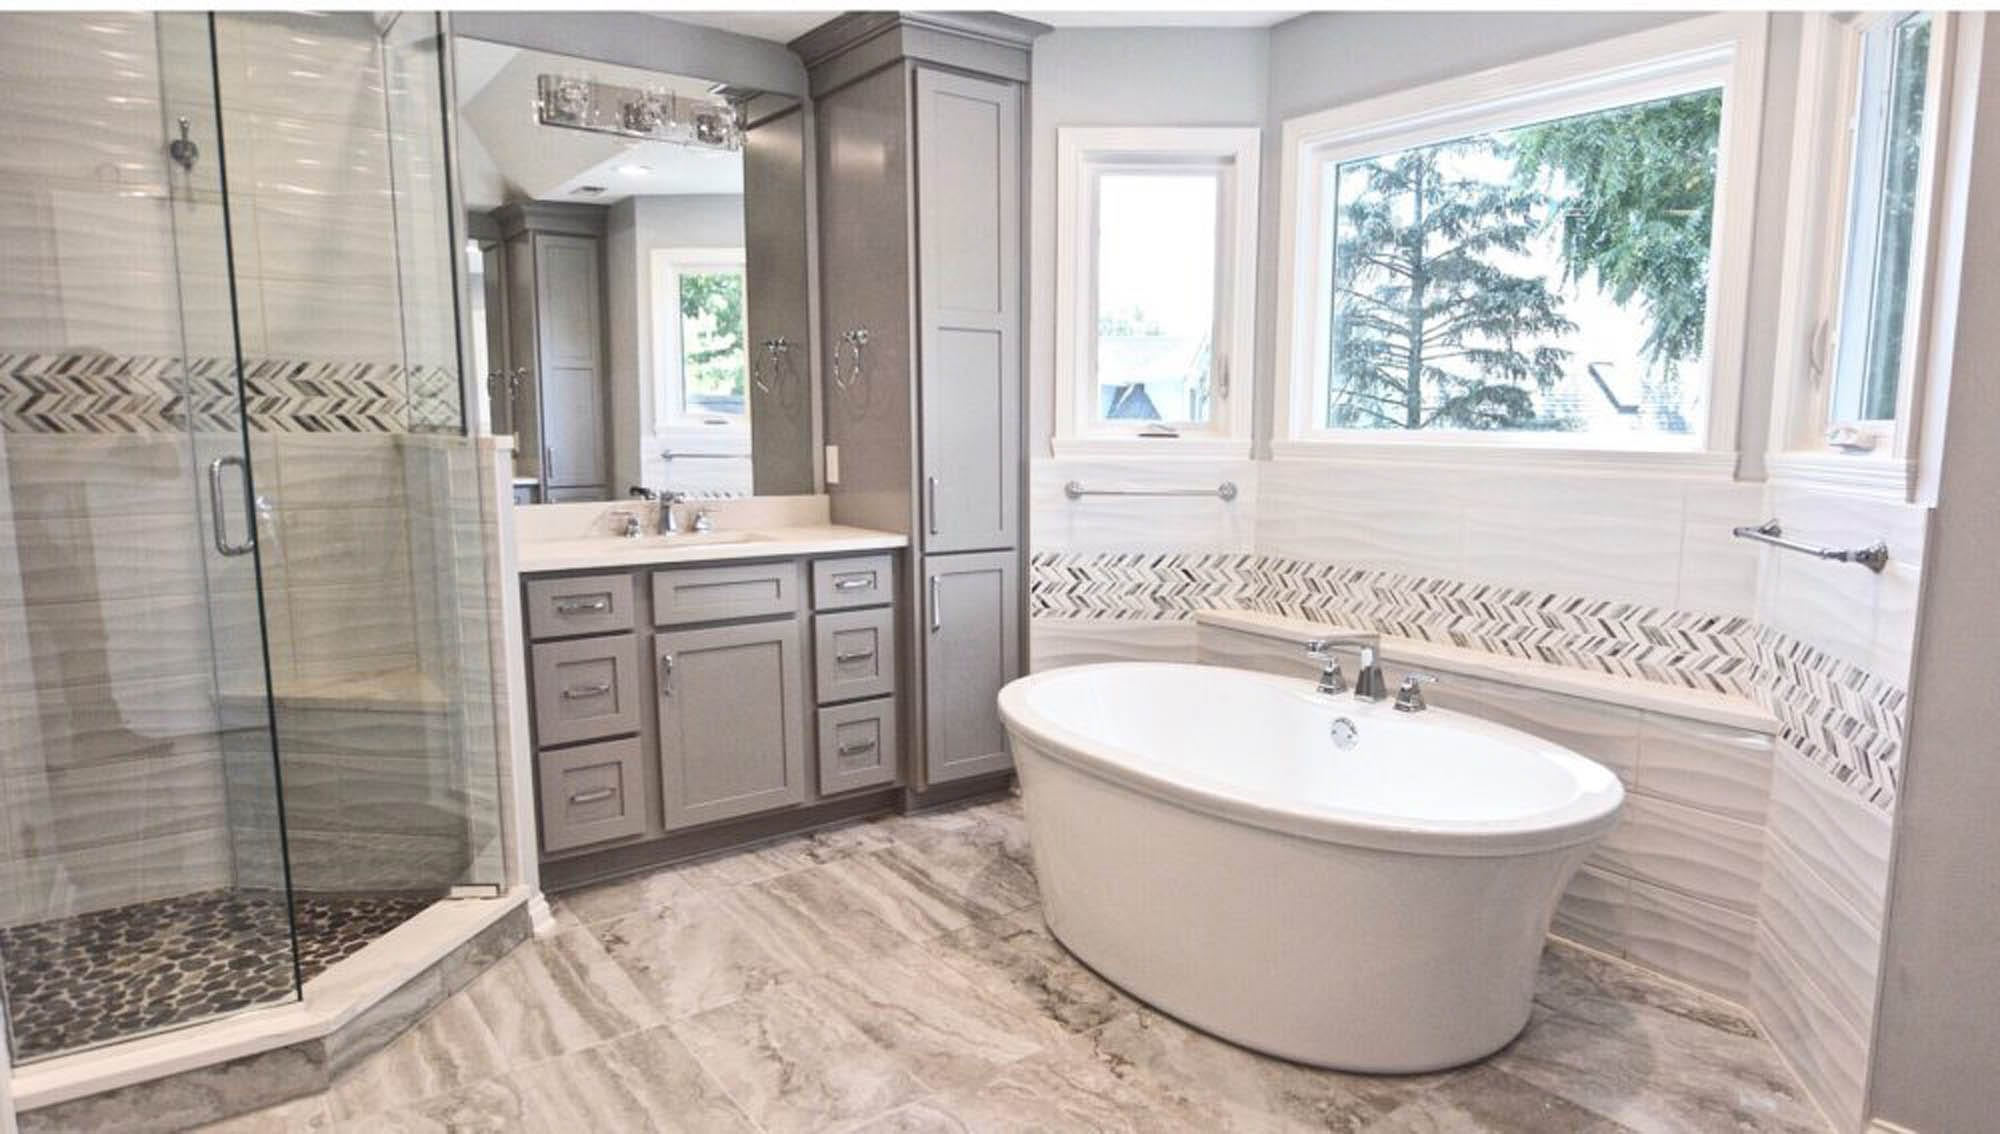 Cream and brown bathroom tile